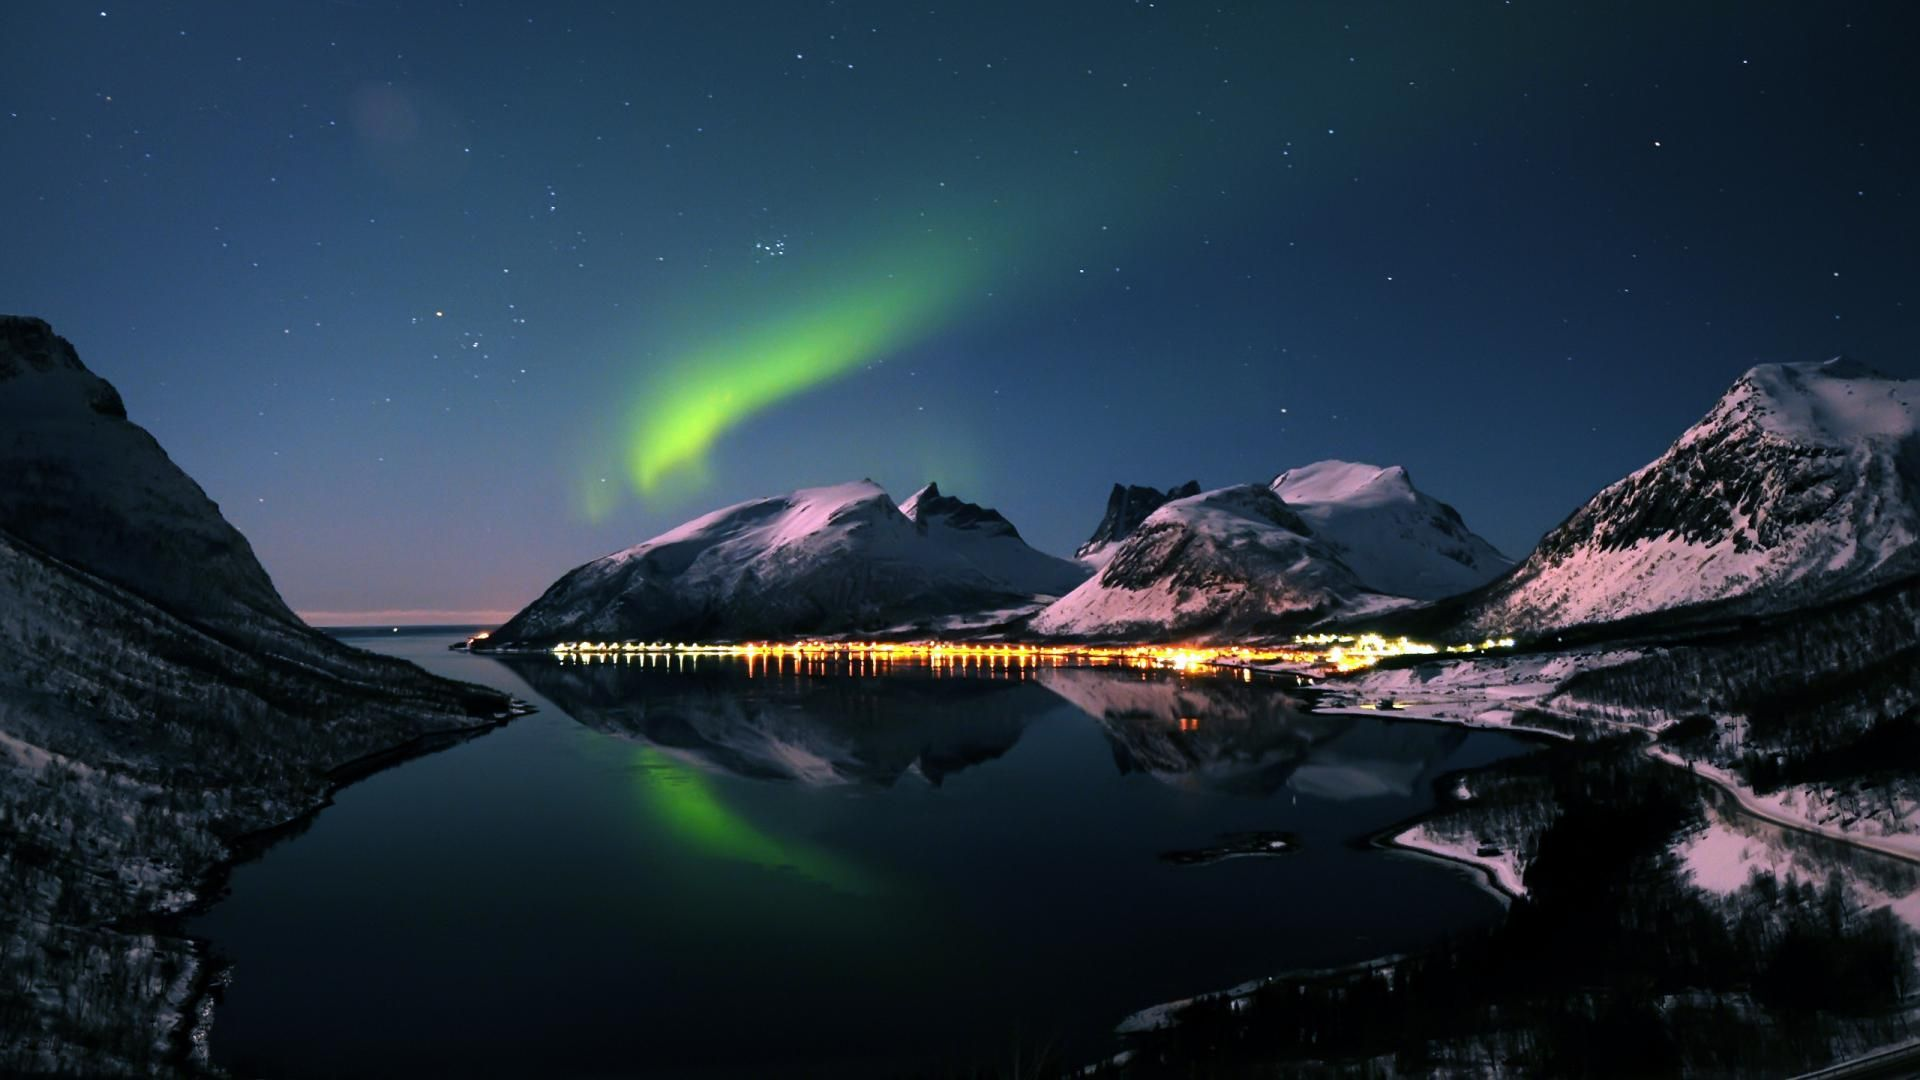 hd wallpapers aurora 1920 | ☀beautiful photography | pinterest